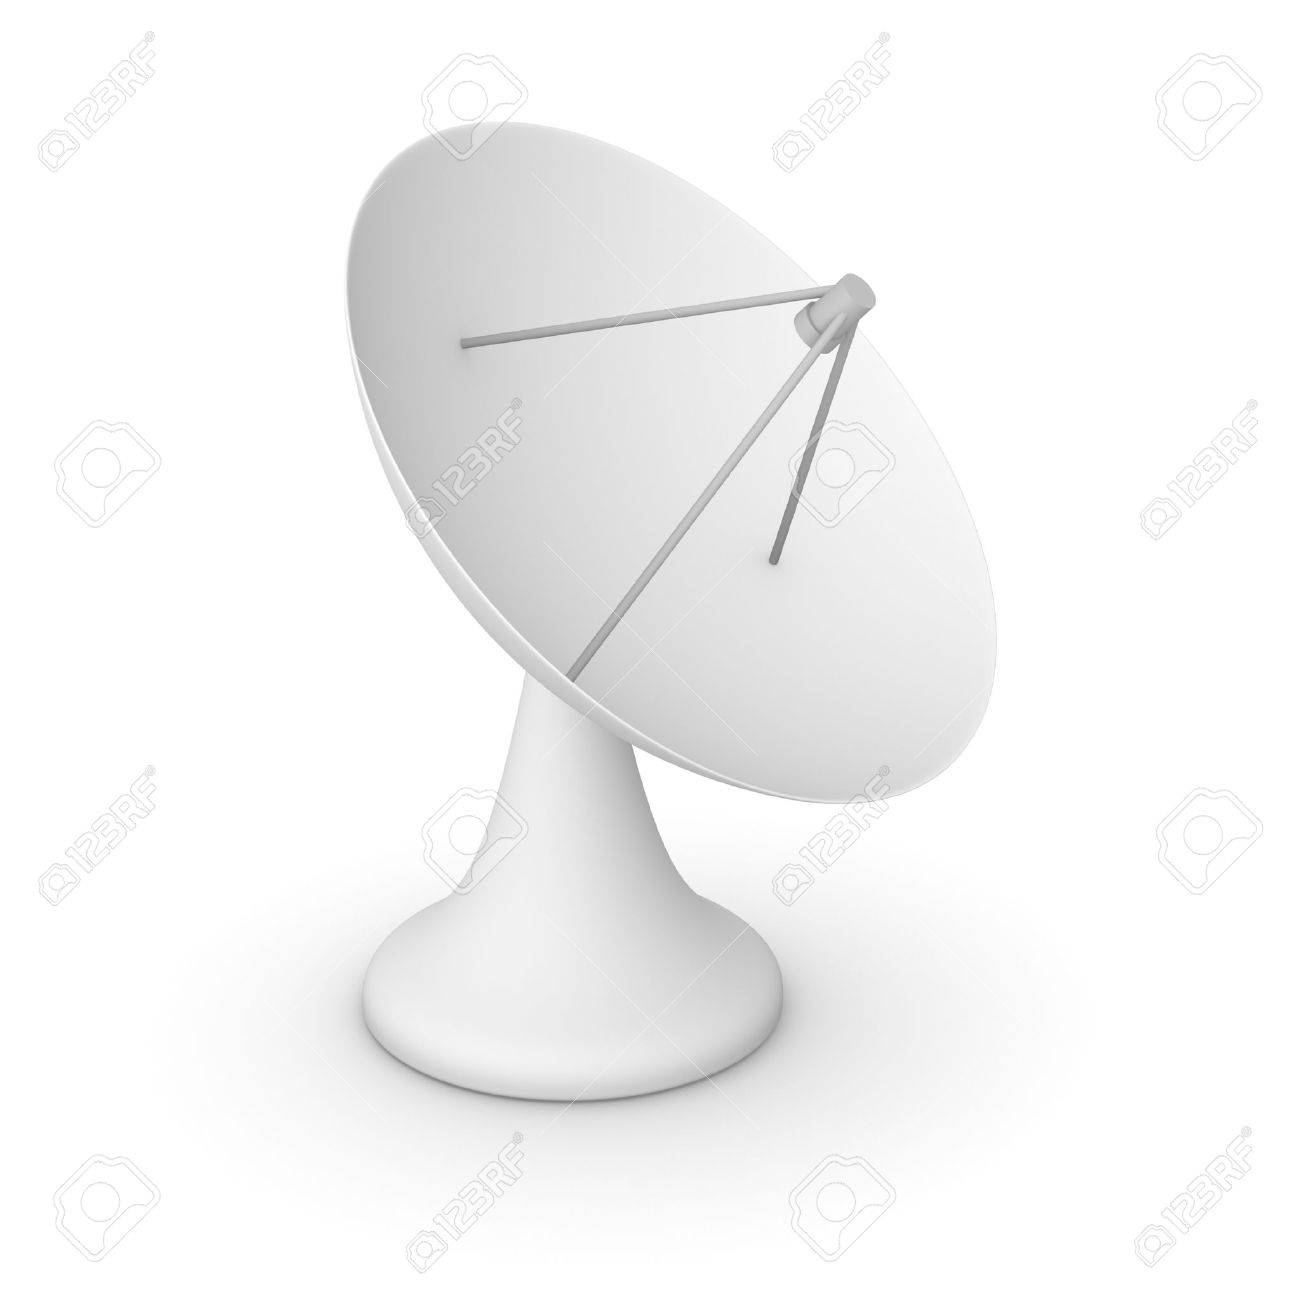 simple modèle 3d de l'antenne parabolique banque d'images et photos